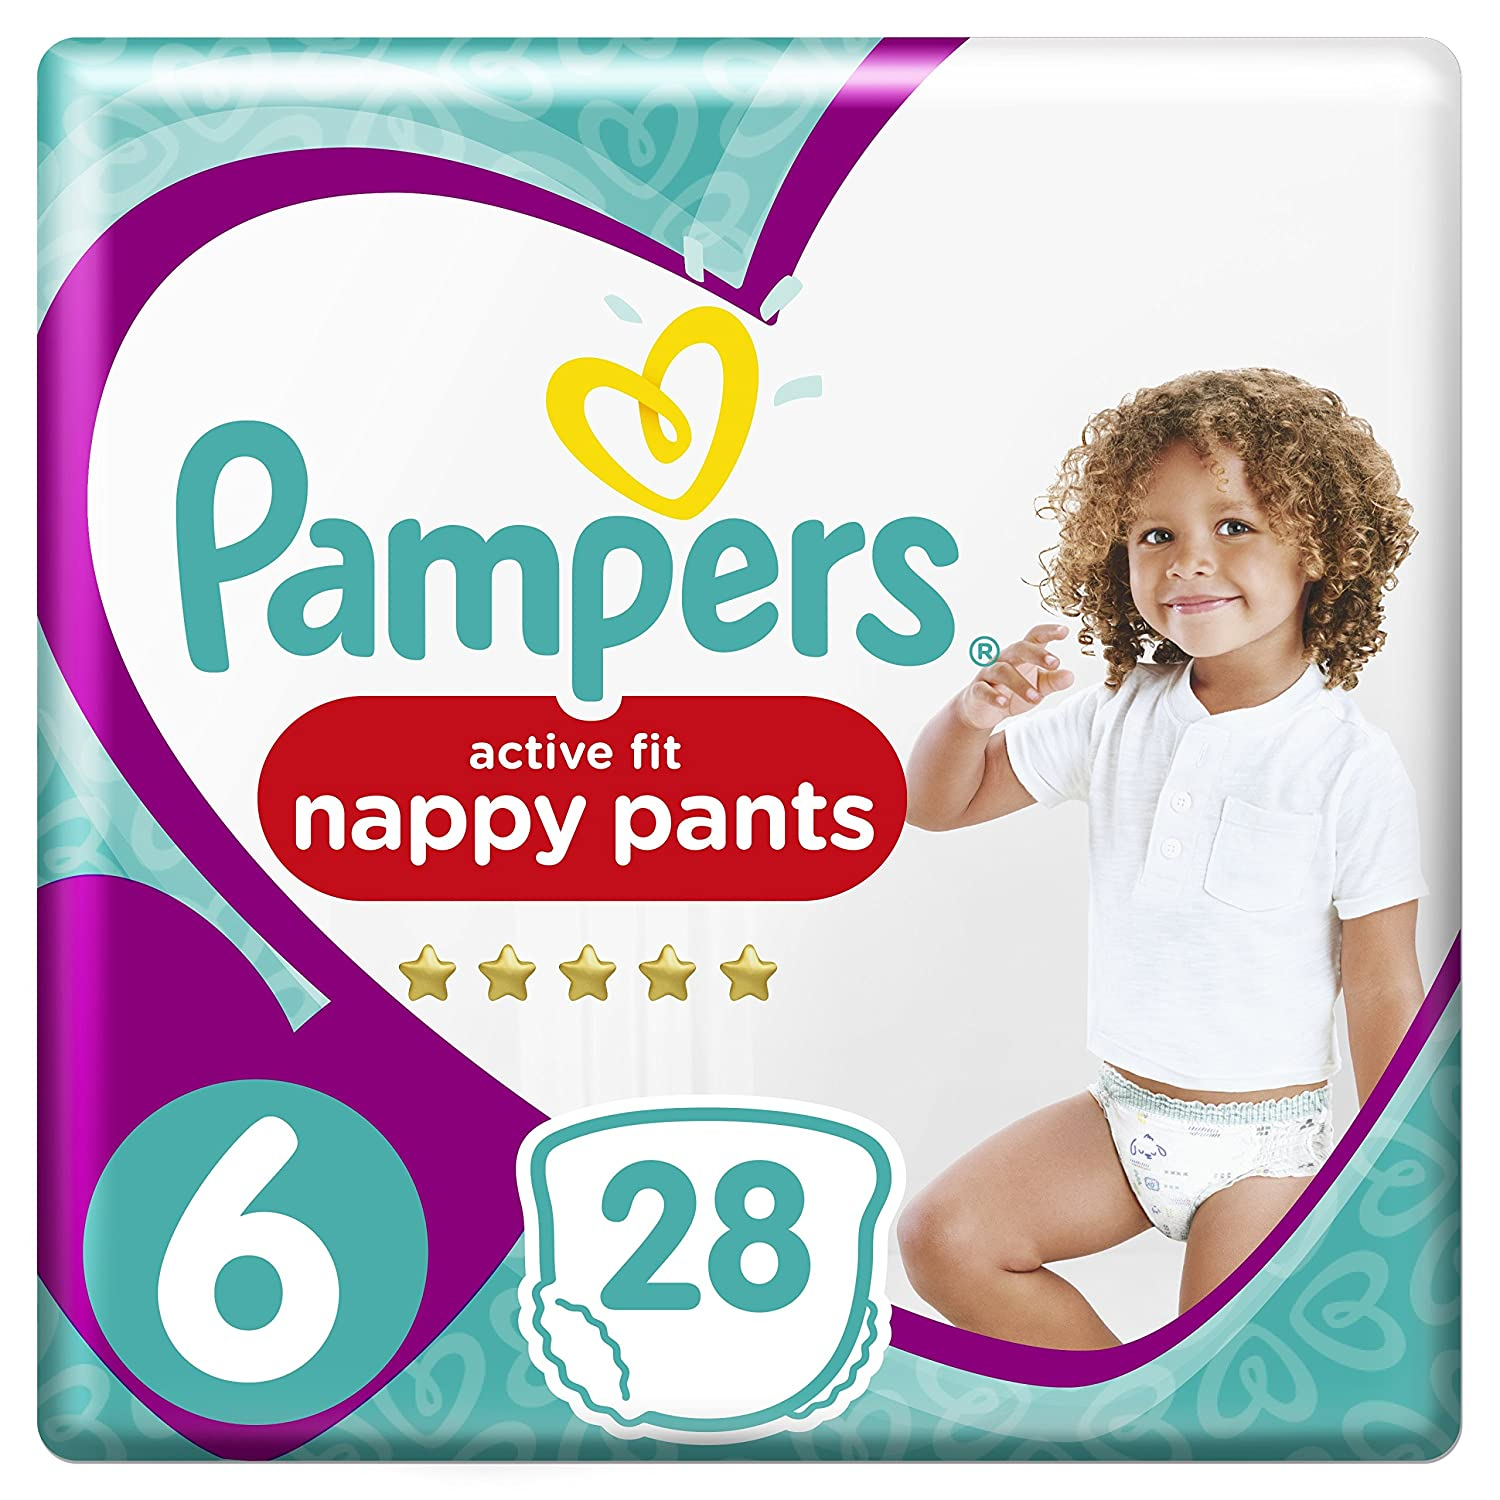 Pampers Premium Protection Active Fit Nappy Pants, 28 Nappies, 15+ kg, Size 6 81605643